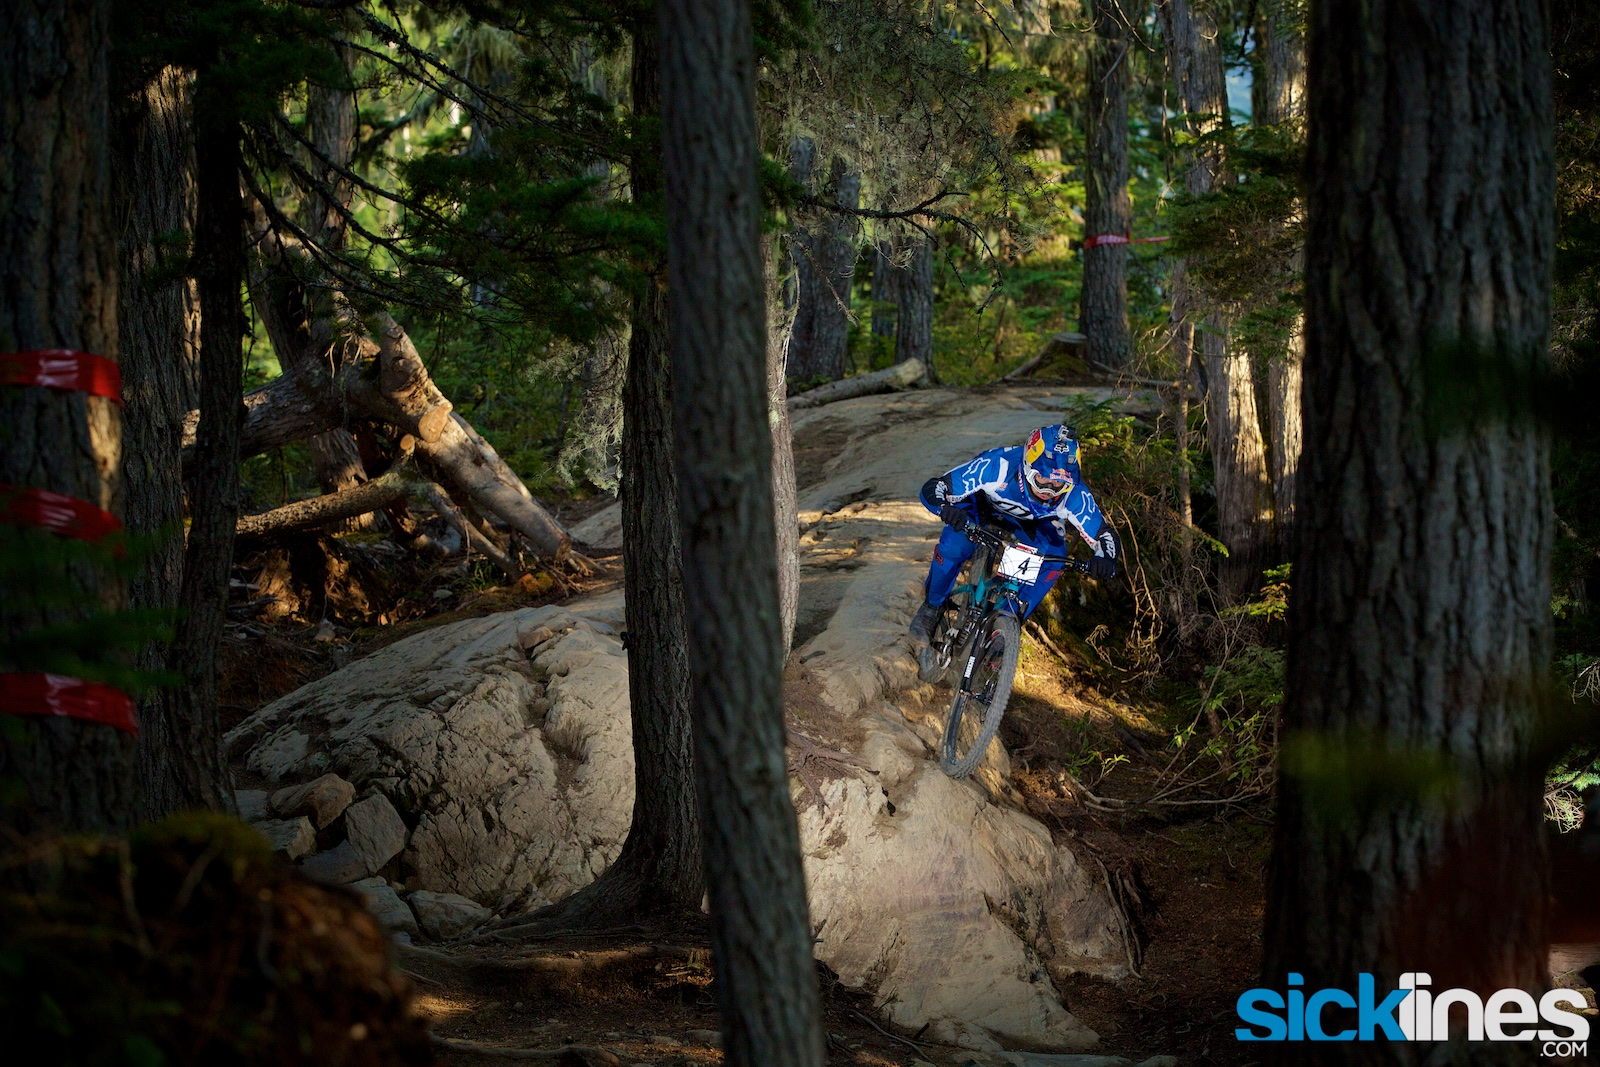 , 2017 Giant Factory Off-Road Team – Giant Bicycles has announced their 2017 team roster.  Eliot Jackson, Marcelo Gutierrez, and Jacob Dickson